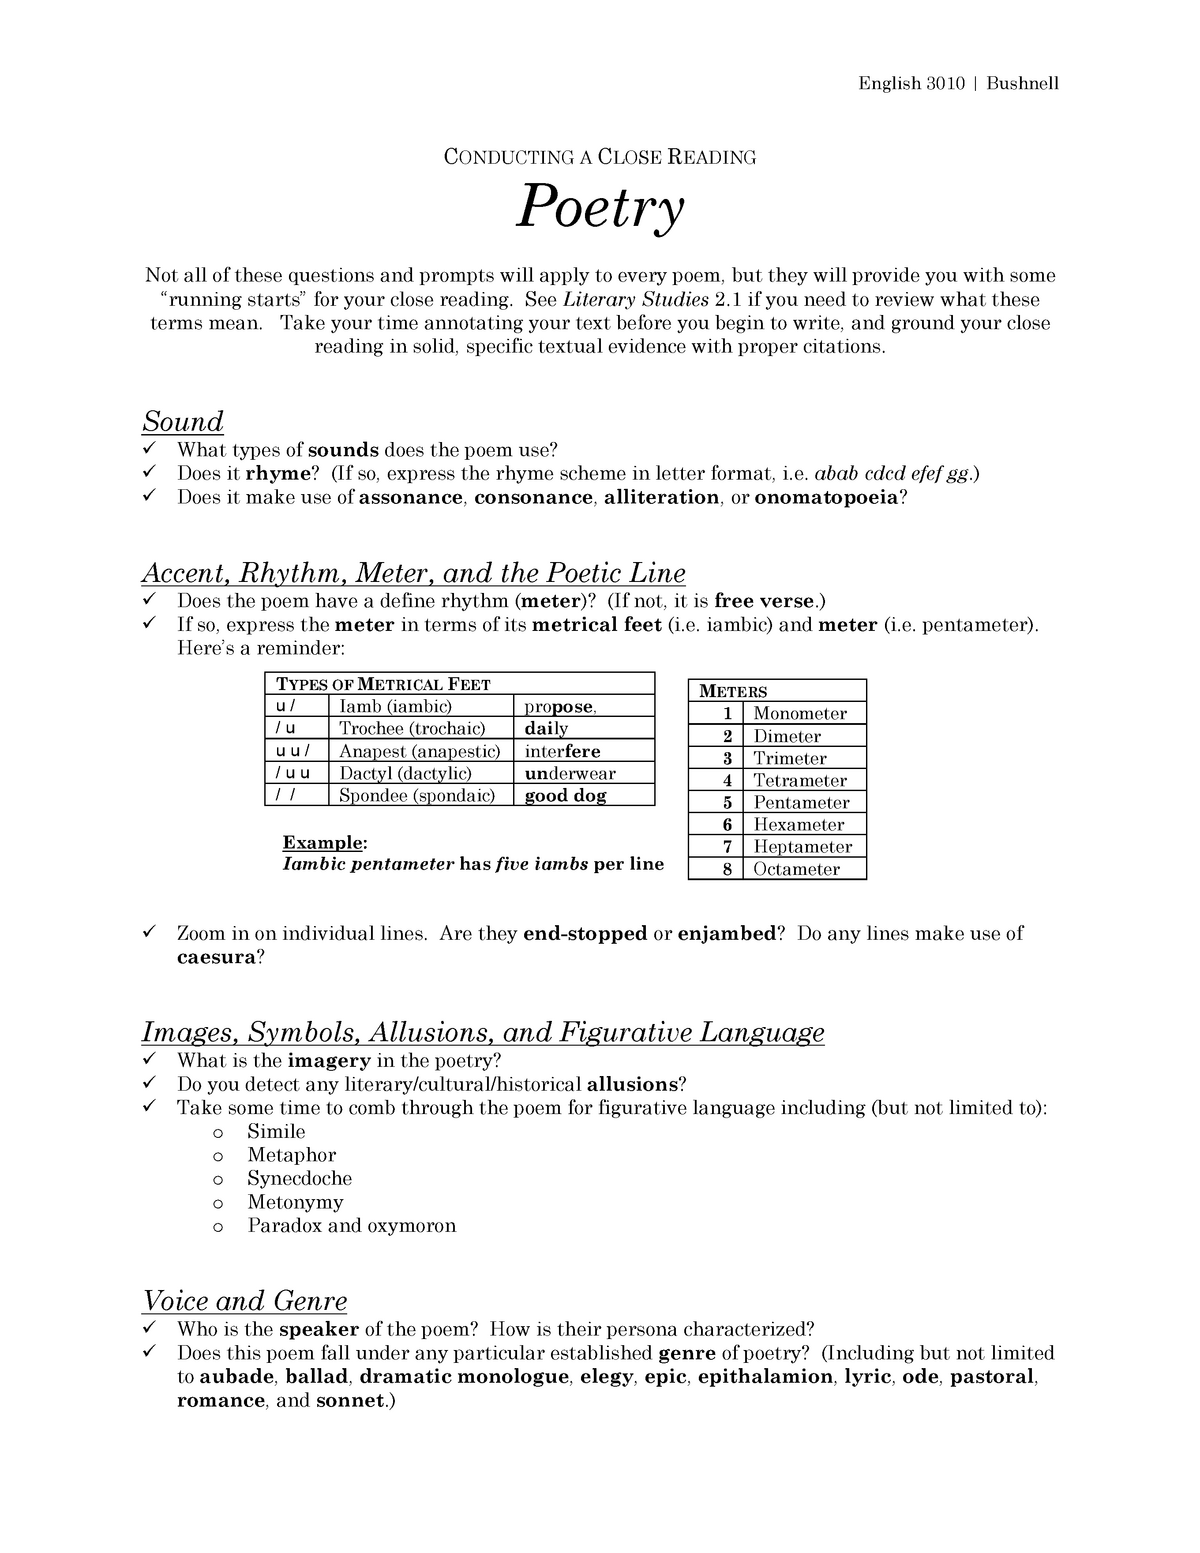 Conducting a Close Reading - Poetry - ENG 3010: Critical